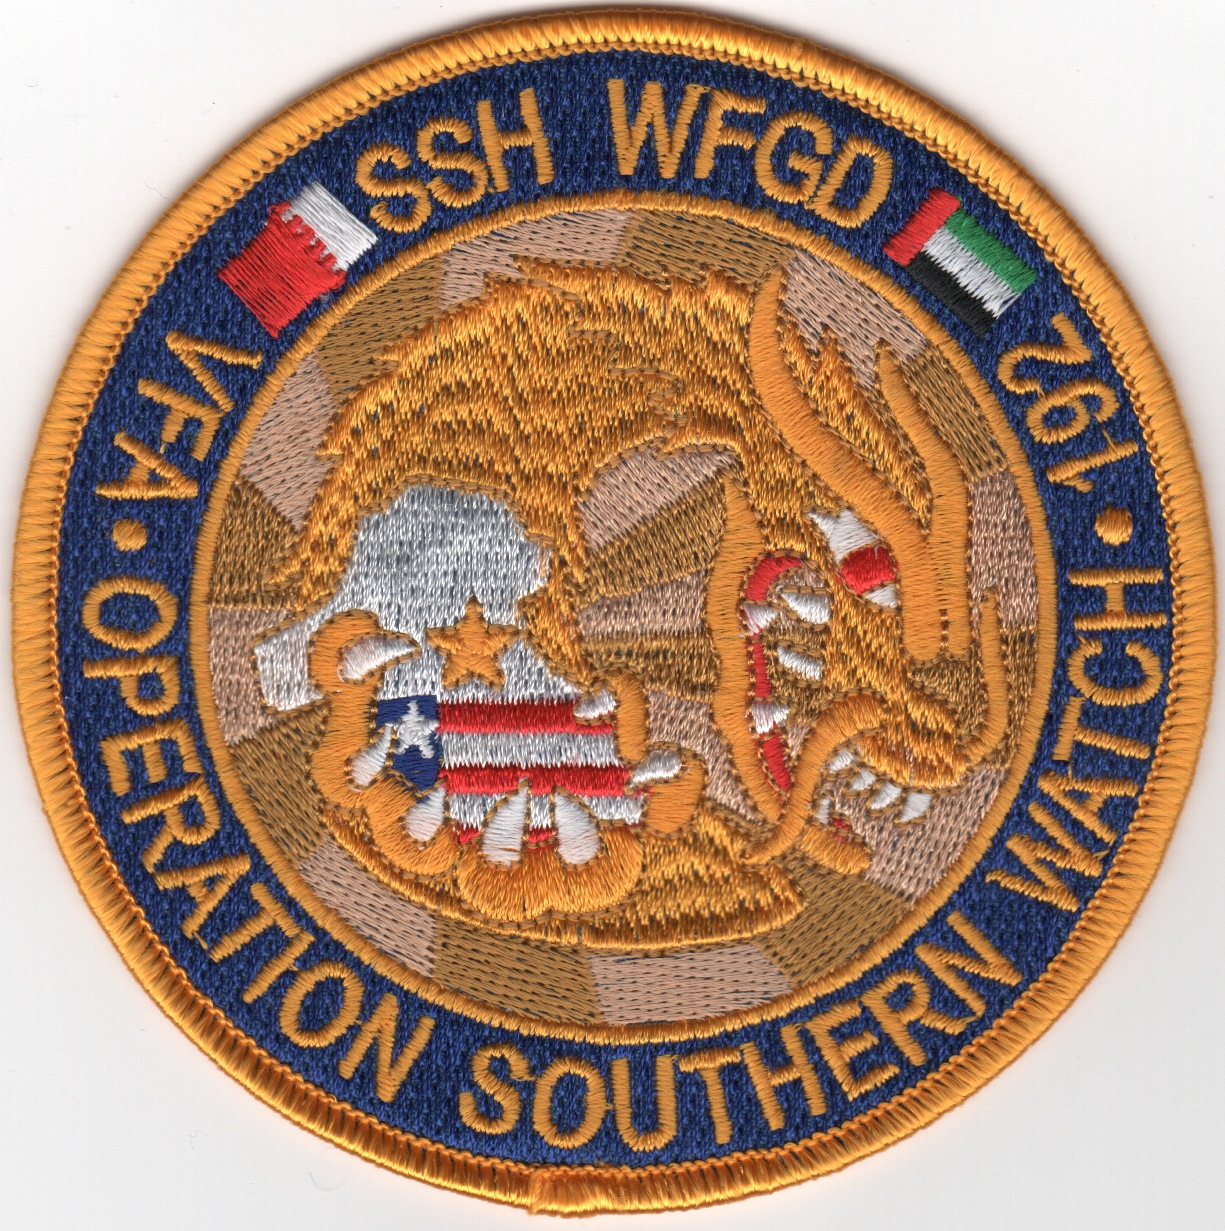 VFA-192 1992 'OSW' Cruise Patch